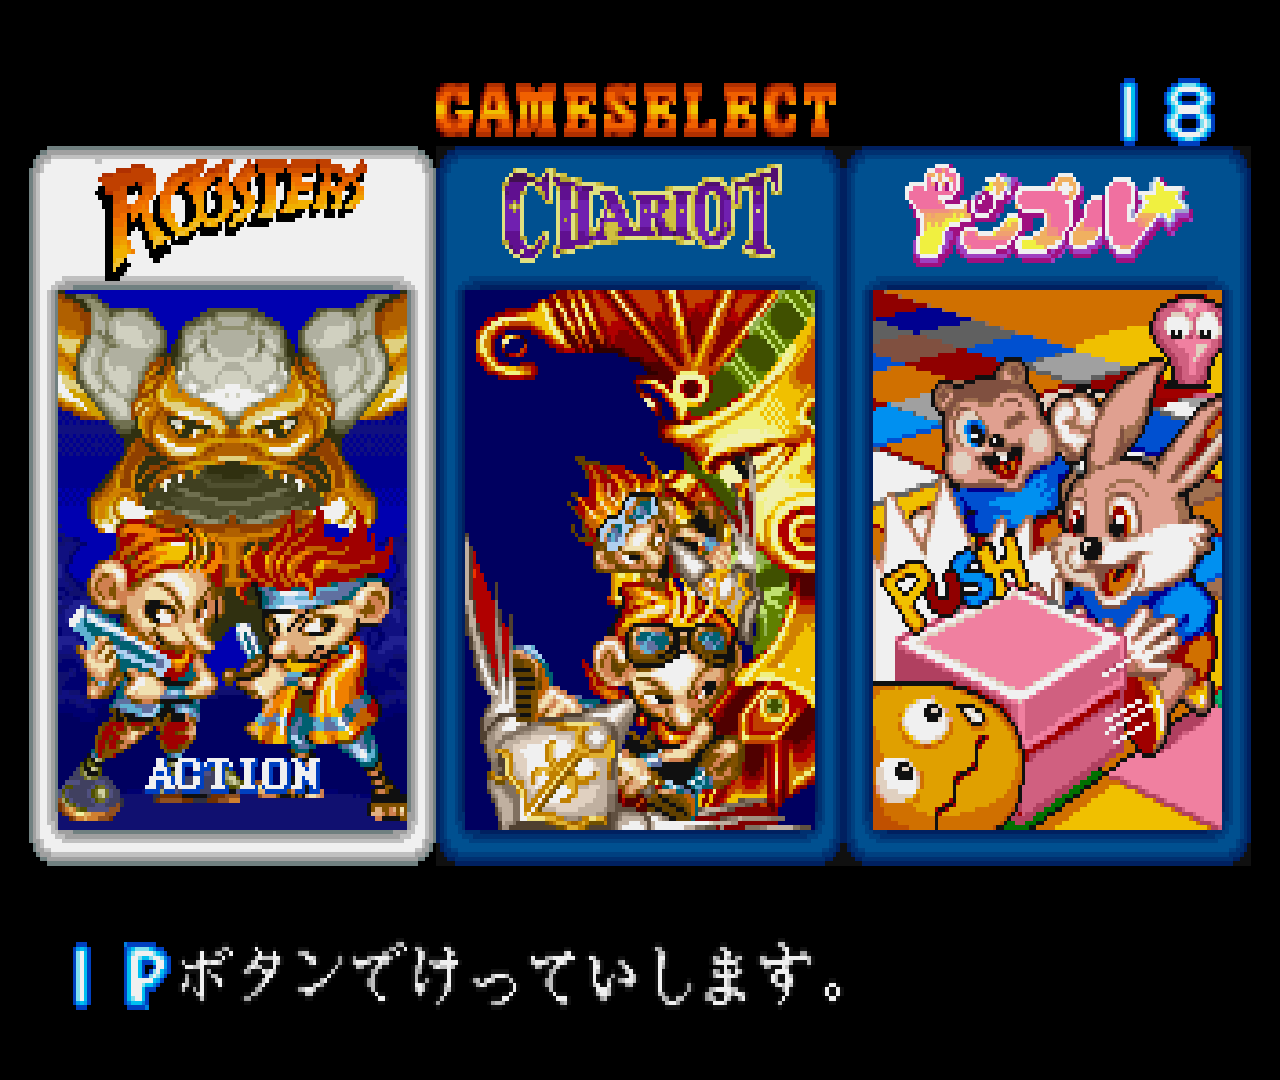 Figure 31 - The game select screen of Wonder 3 Arcade Gear